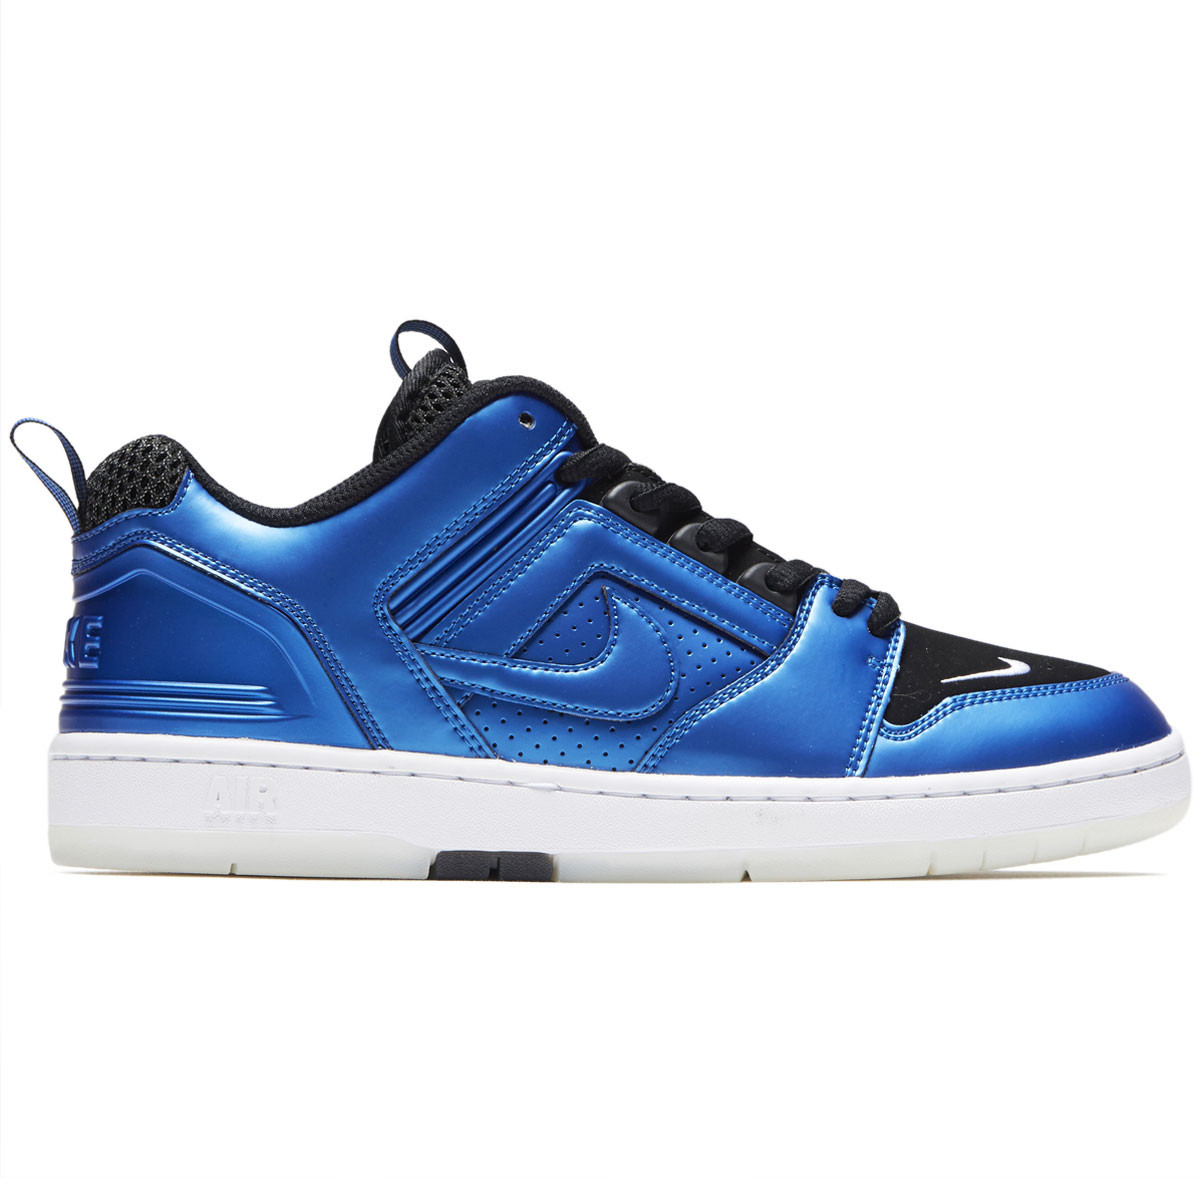 Nike SB Air Force II Low QS Shoes - Intl Blue Intl Blue Black dedef23e7